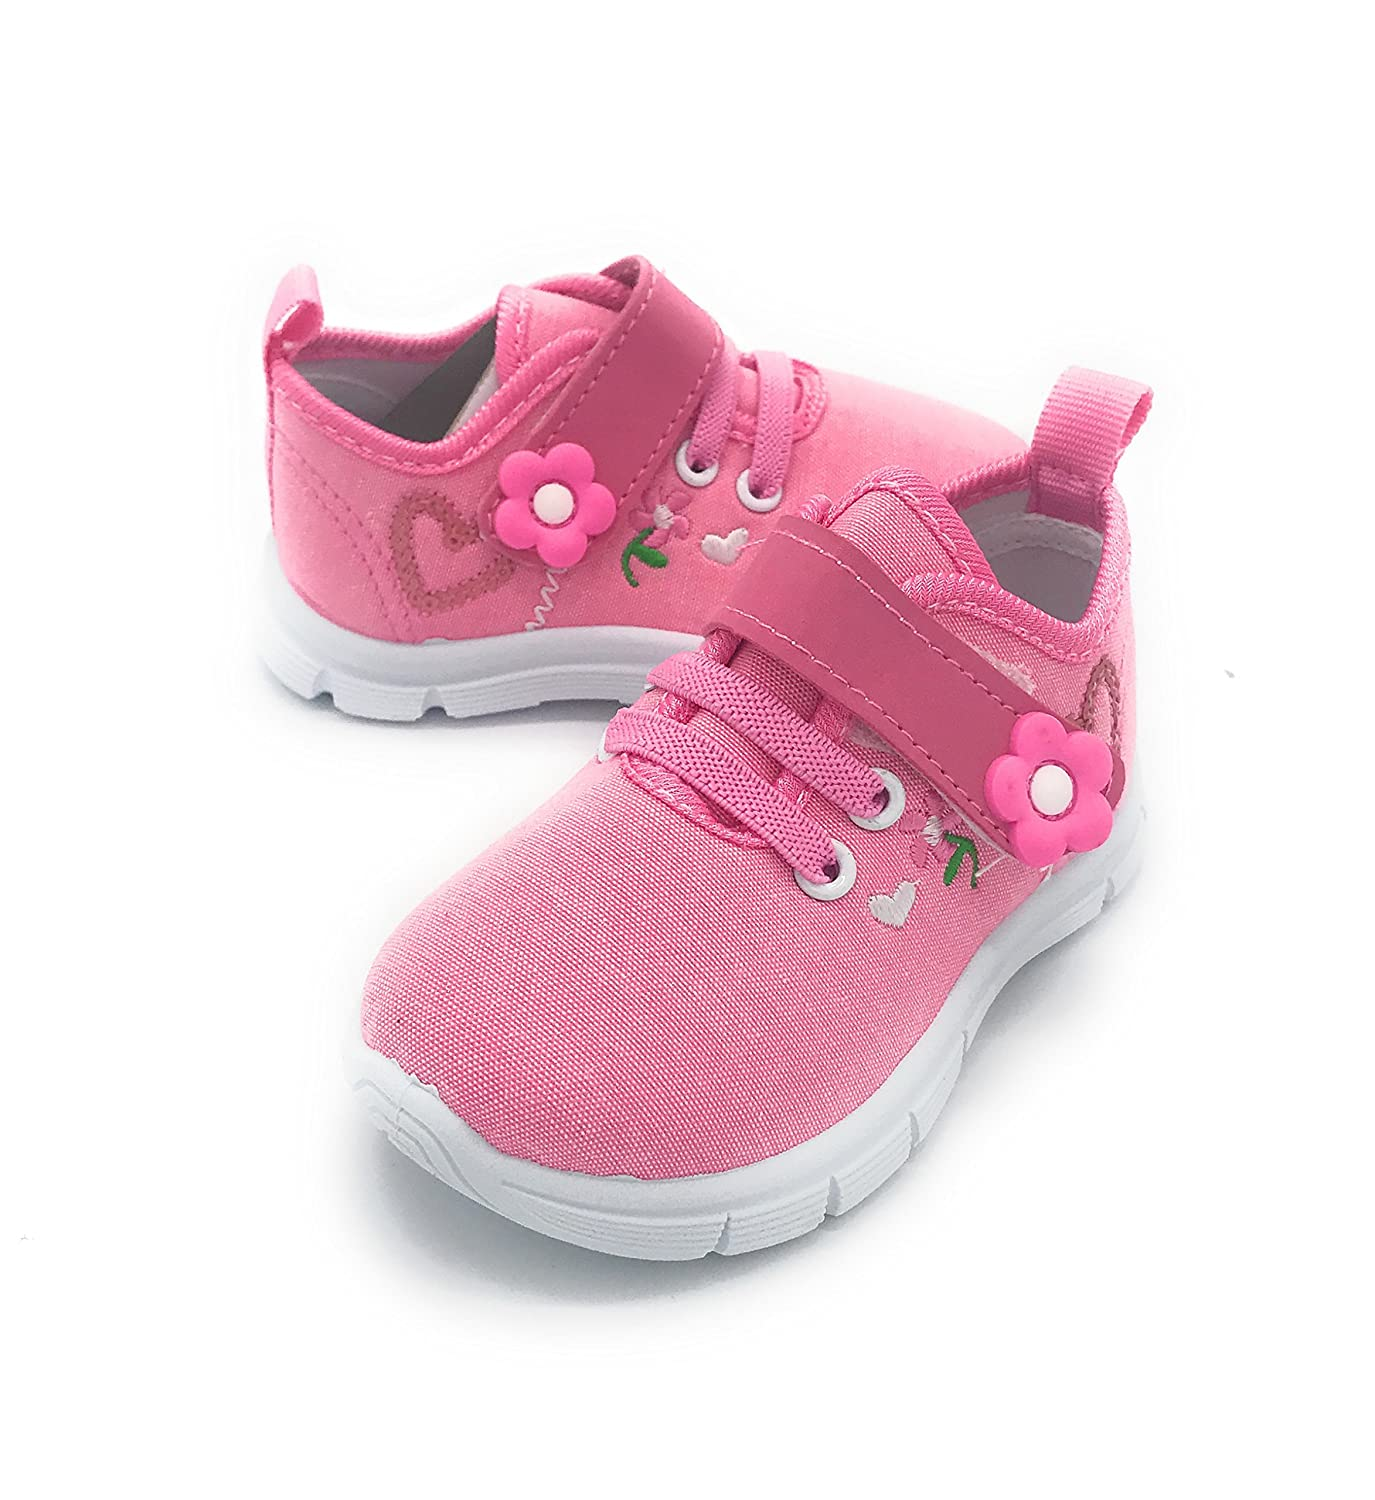 Blue Berry EASY21 Girl Shoes Fashion Comfy Cute Baby Toddler Sneakers SMART-403-P$